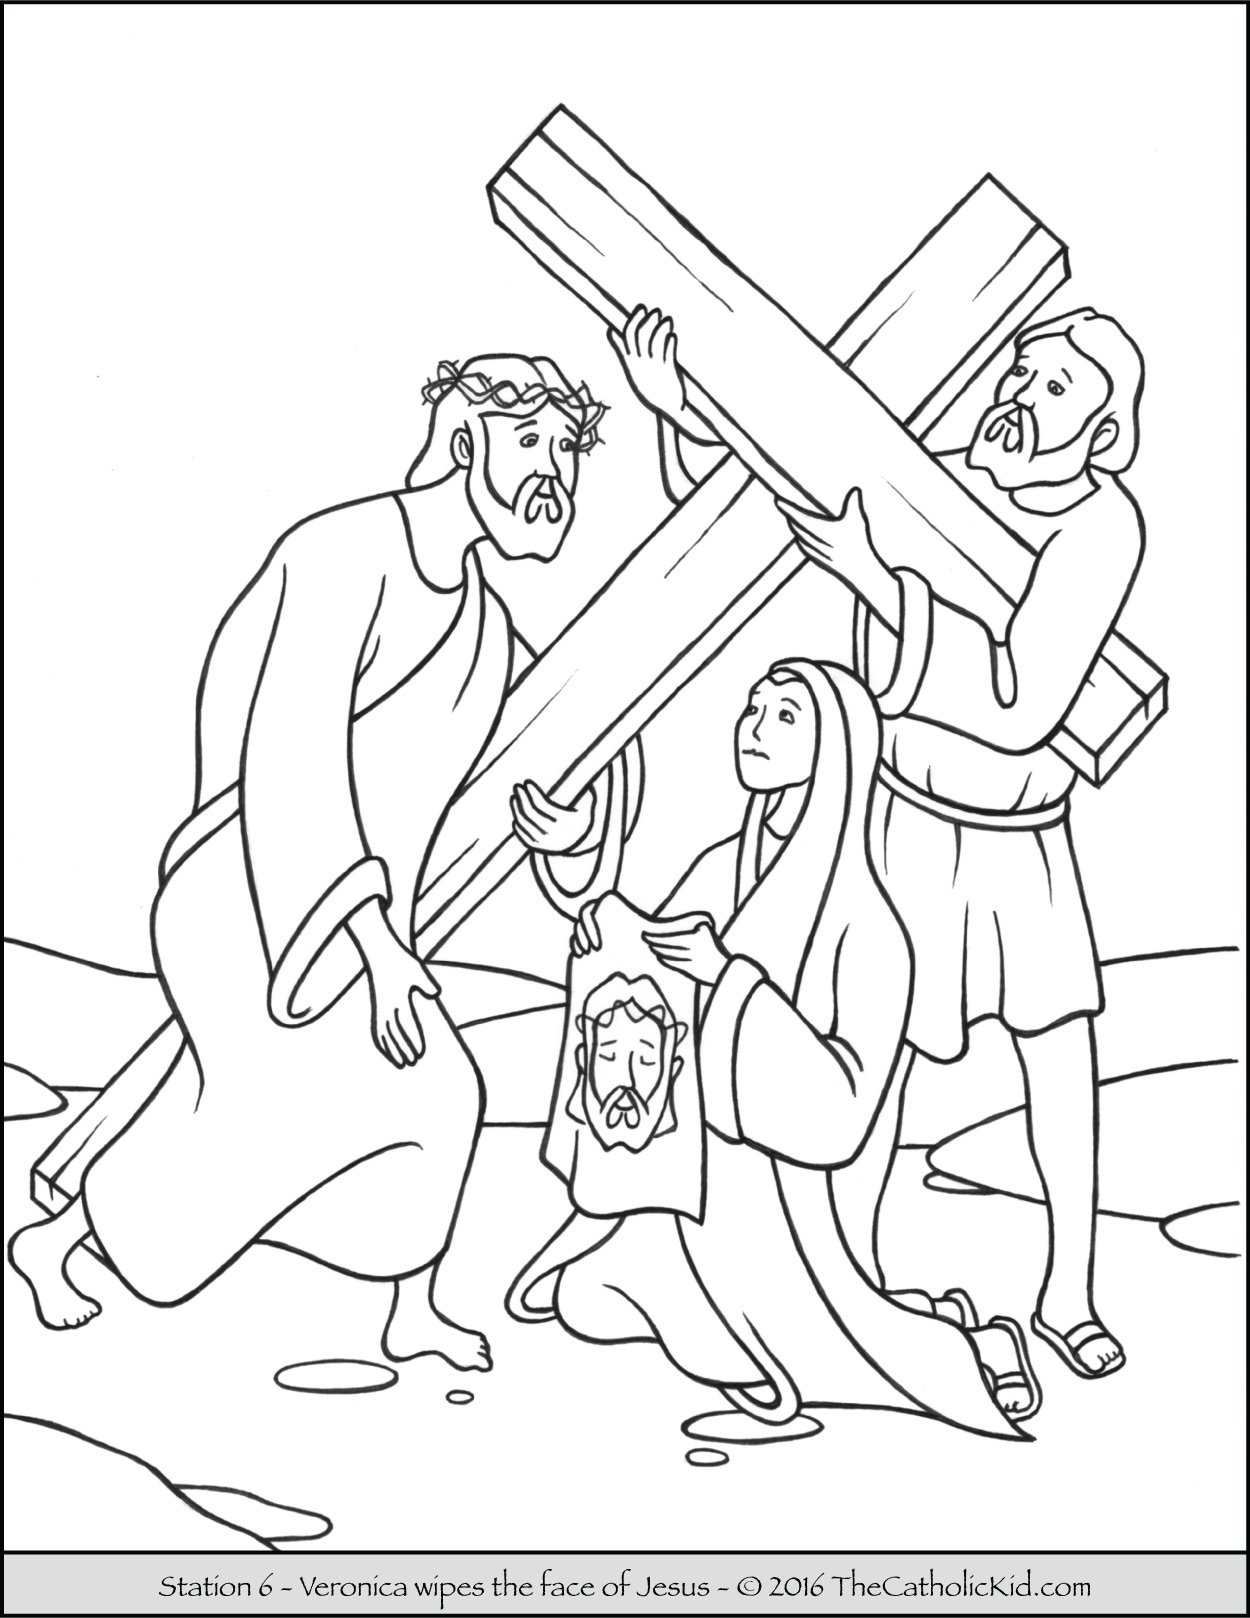 Stations Of The Cross Coloring Pages Captivating Stations Of The Cross Coloring Pages  The Catholic Kid Decorating Inspiration